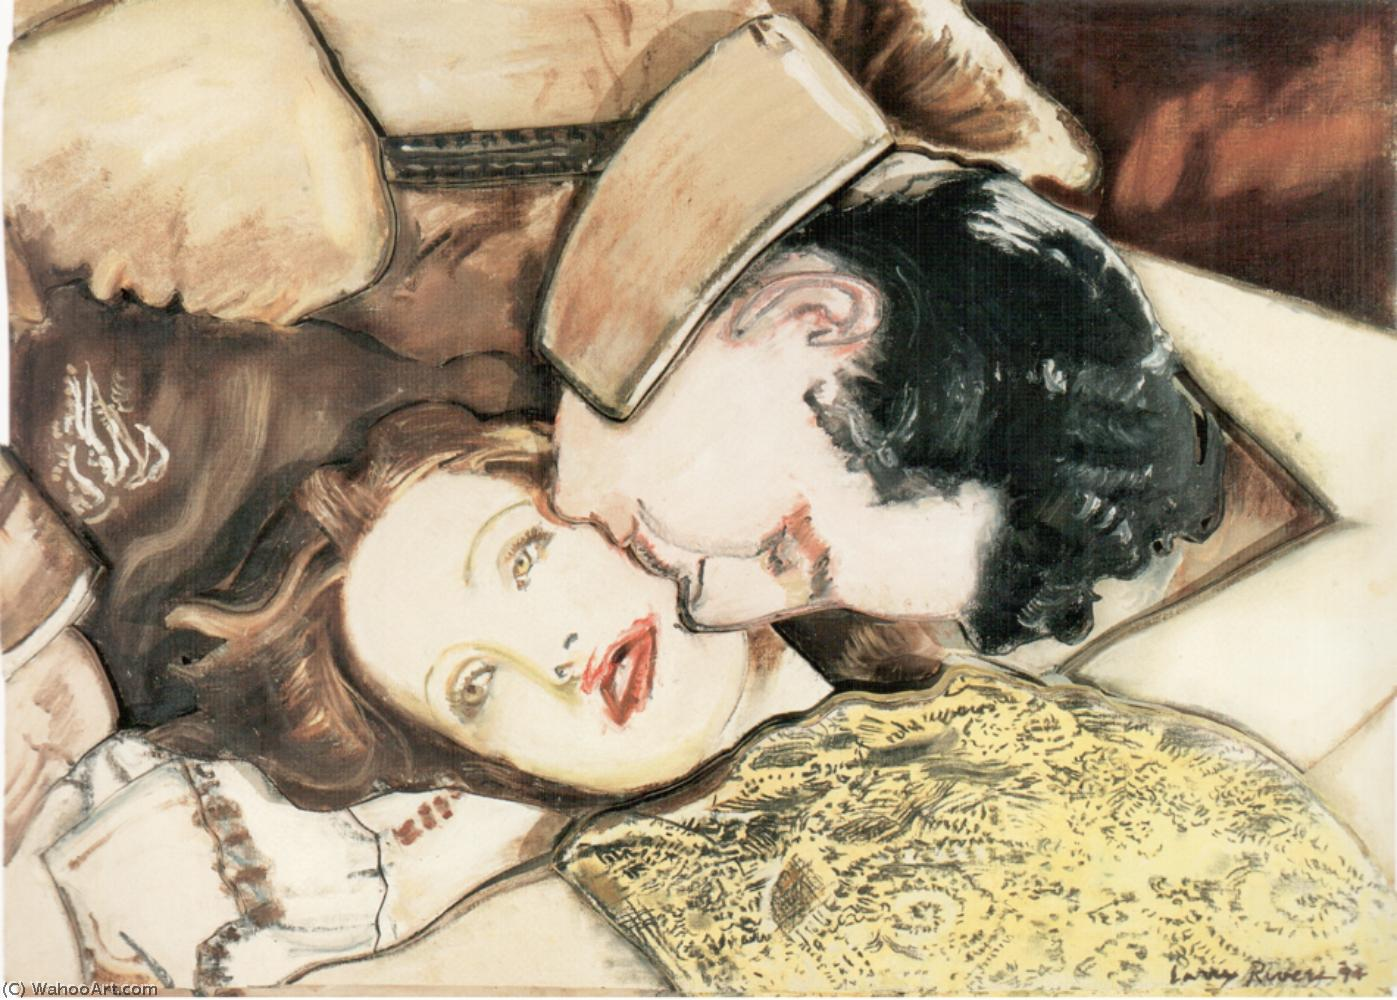 famous painting gilbert und garbo of Larry Rivers